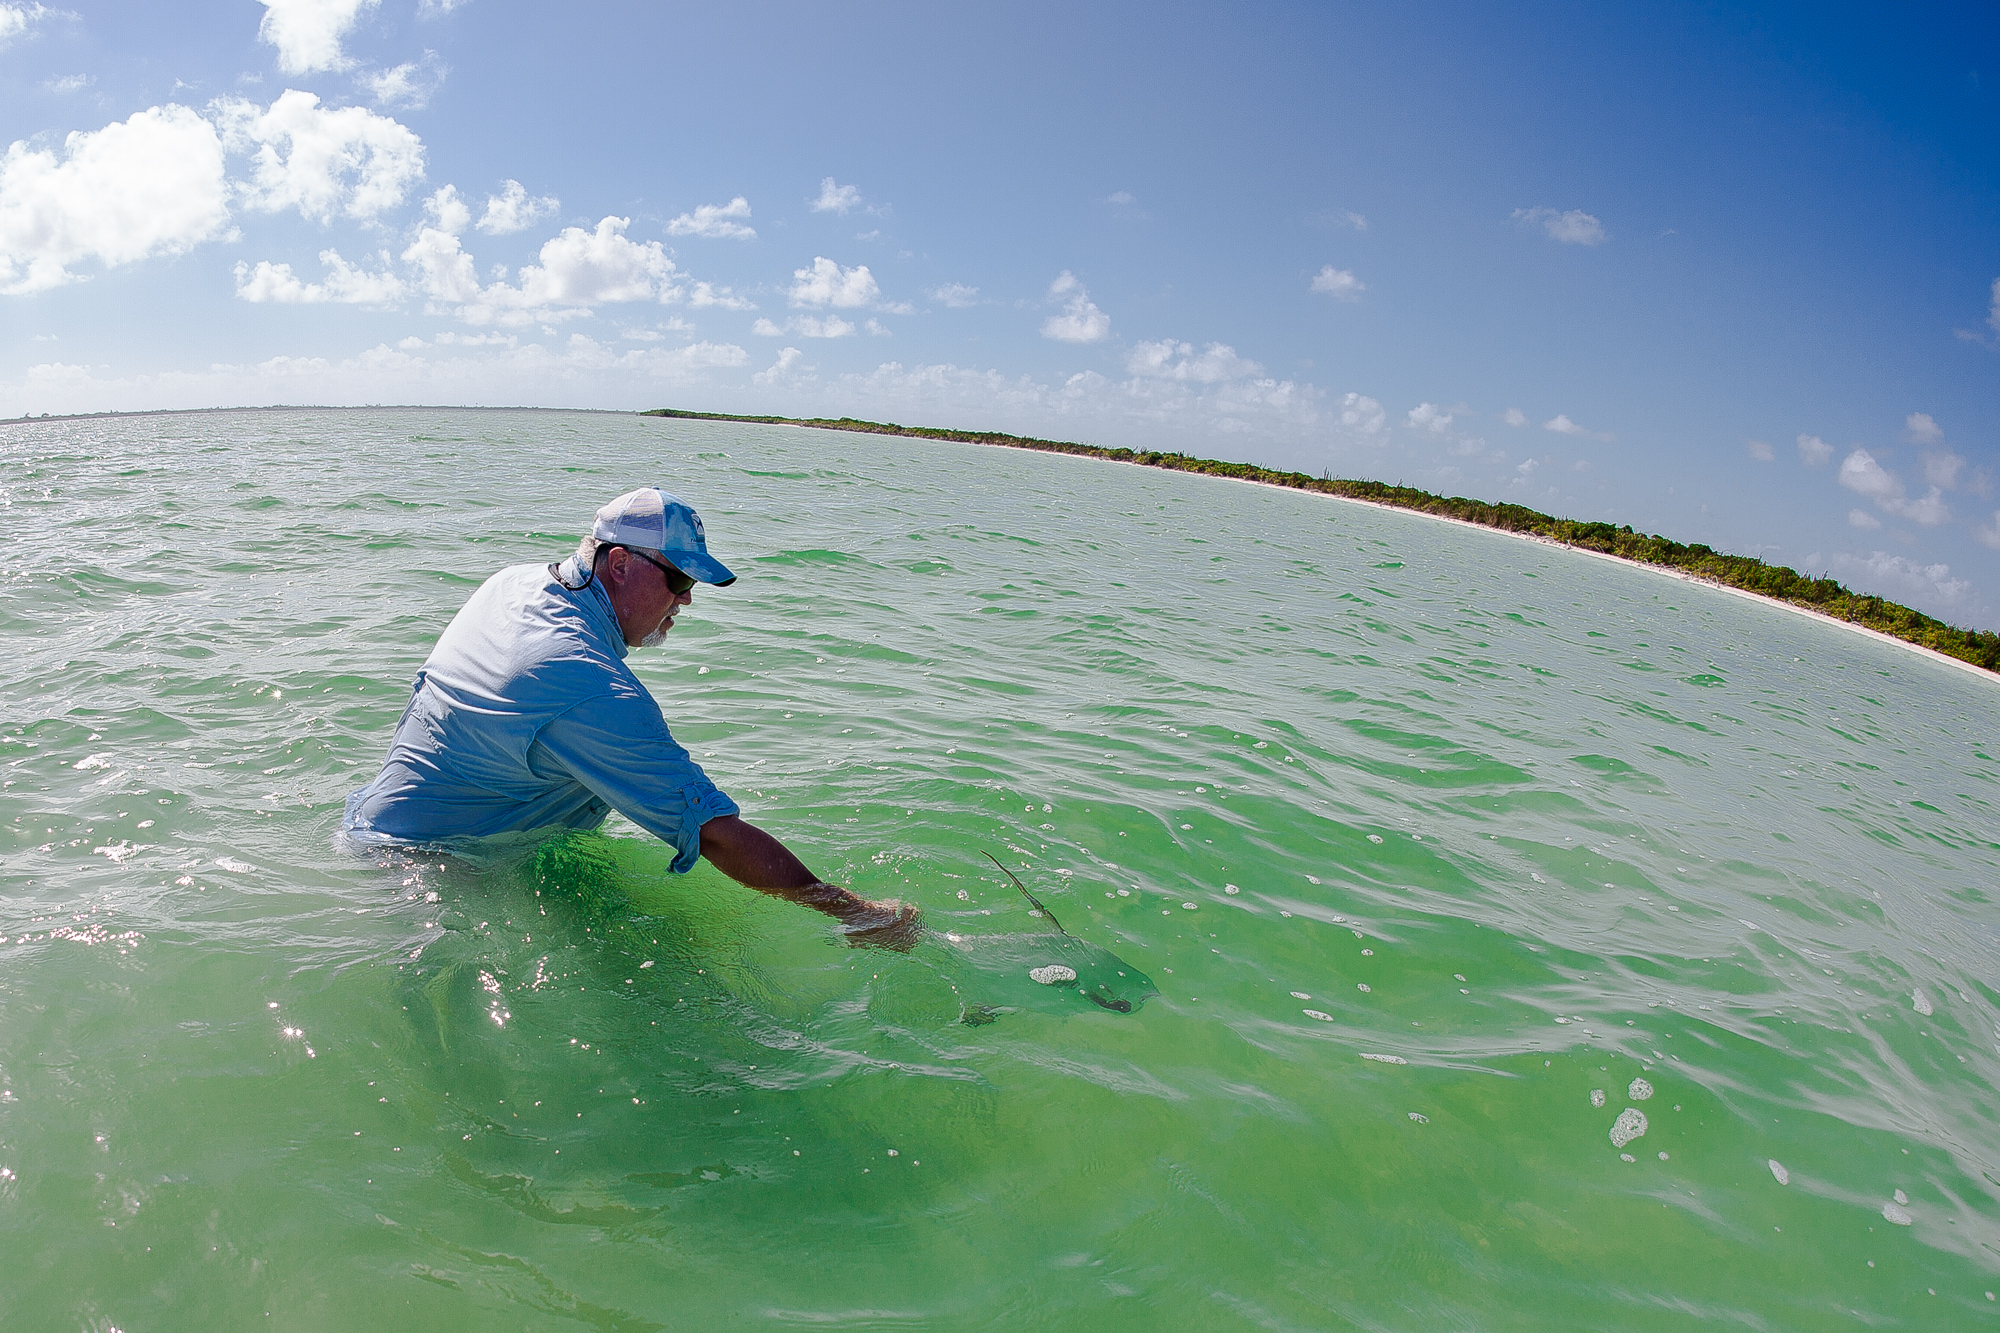 If you catch a permit, it is your job to properly release it. Chris Hunt does so here (photo: Chad Shmukler).